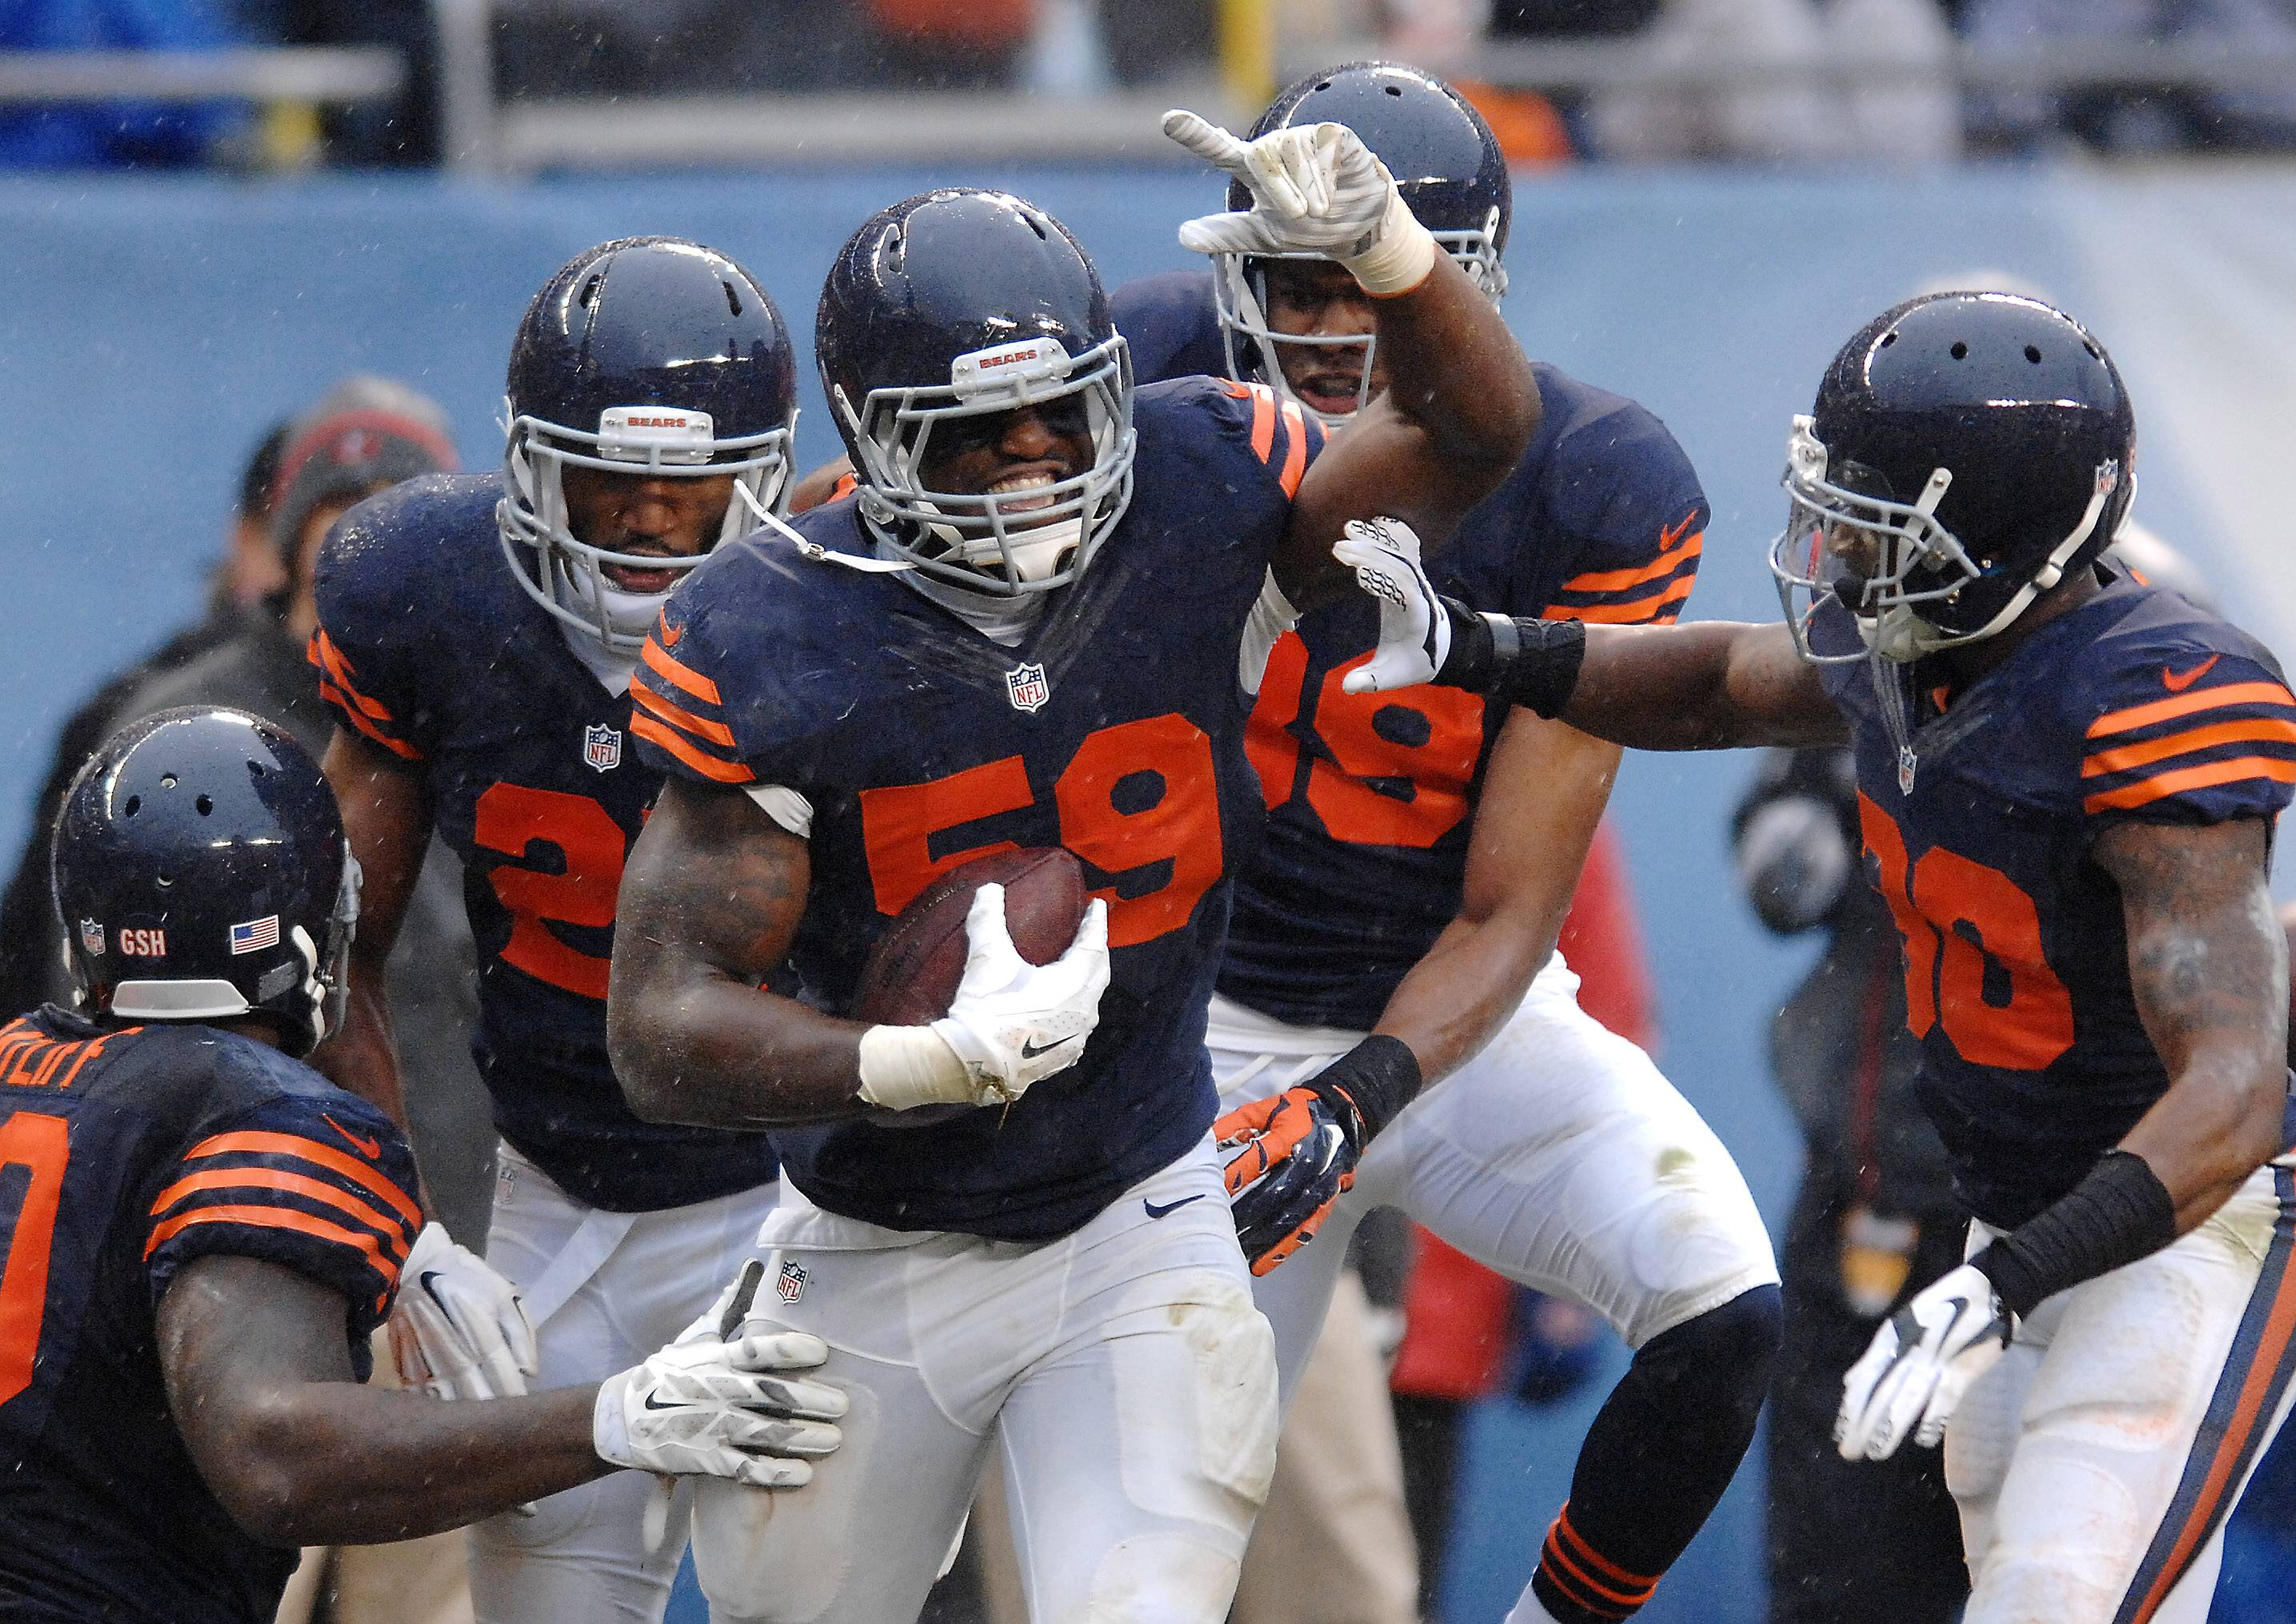 Chicago Bears inside linebacker Christian Jones (59) celebrates with his teammates after a fumble recovery during Sunday's game at Soldier Field in Chicago.